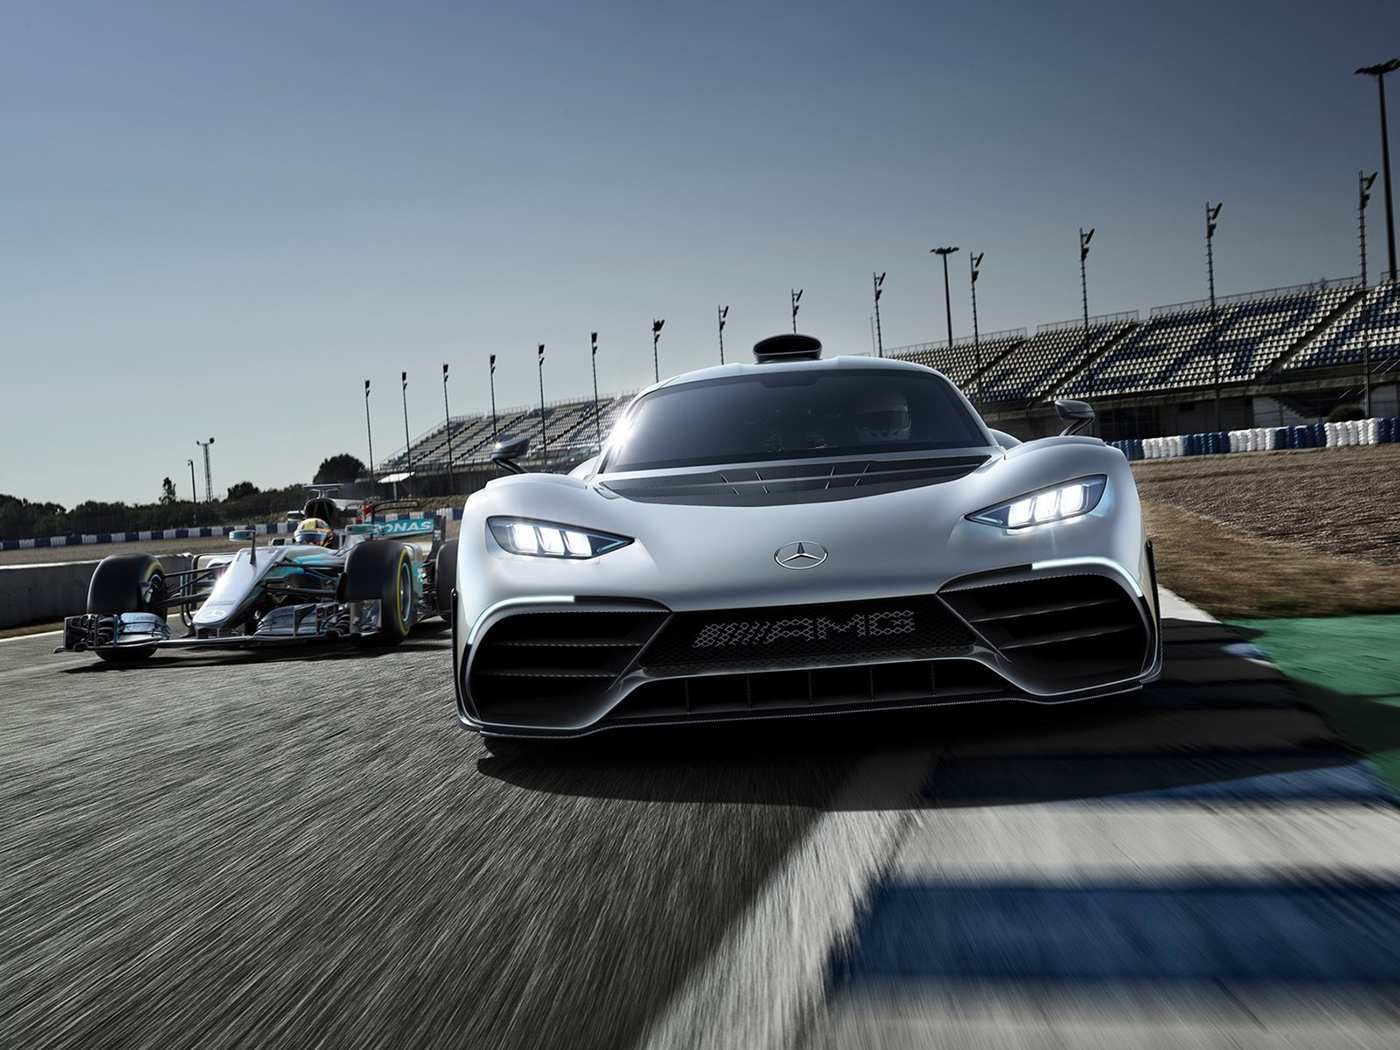 Mercedes-Benz AMG Project ONE Concept on